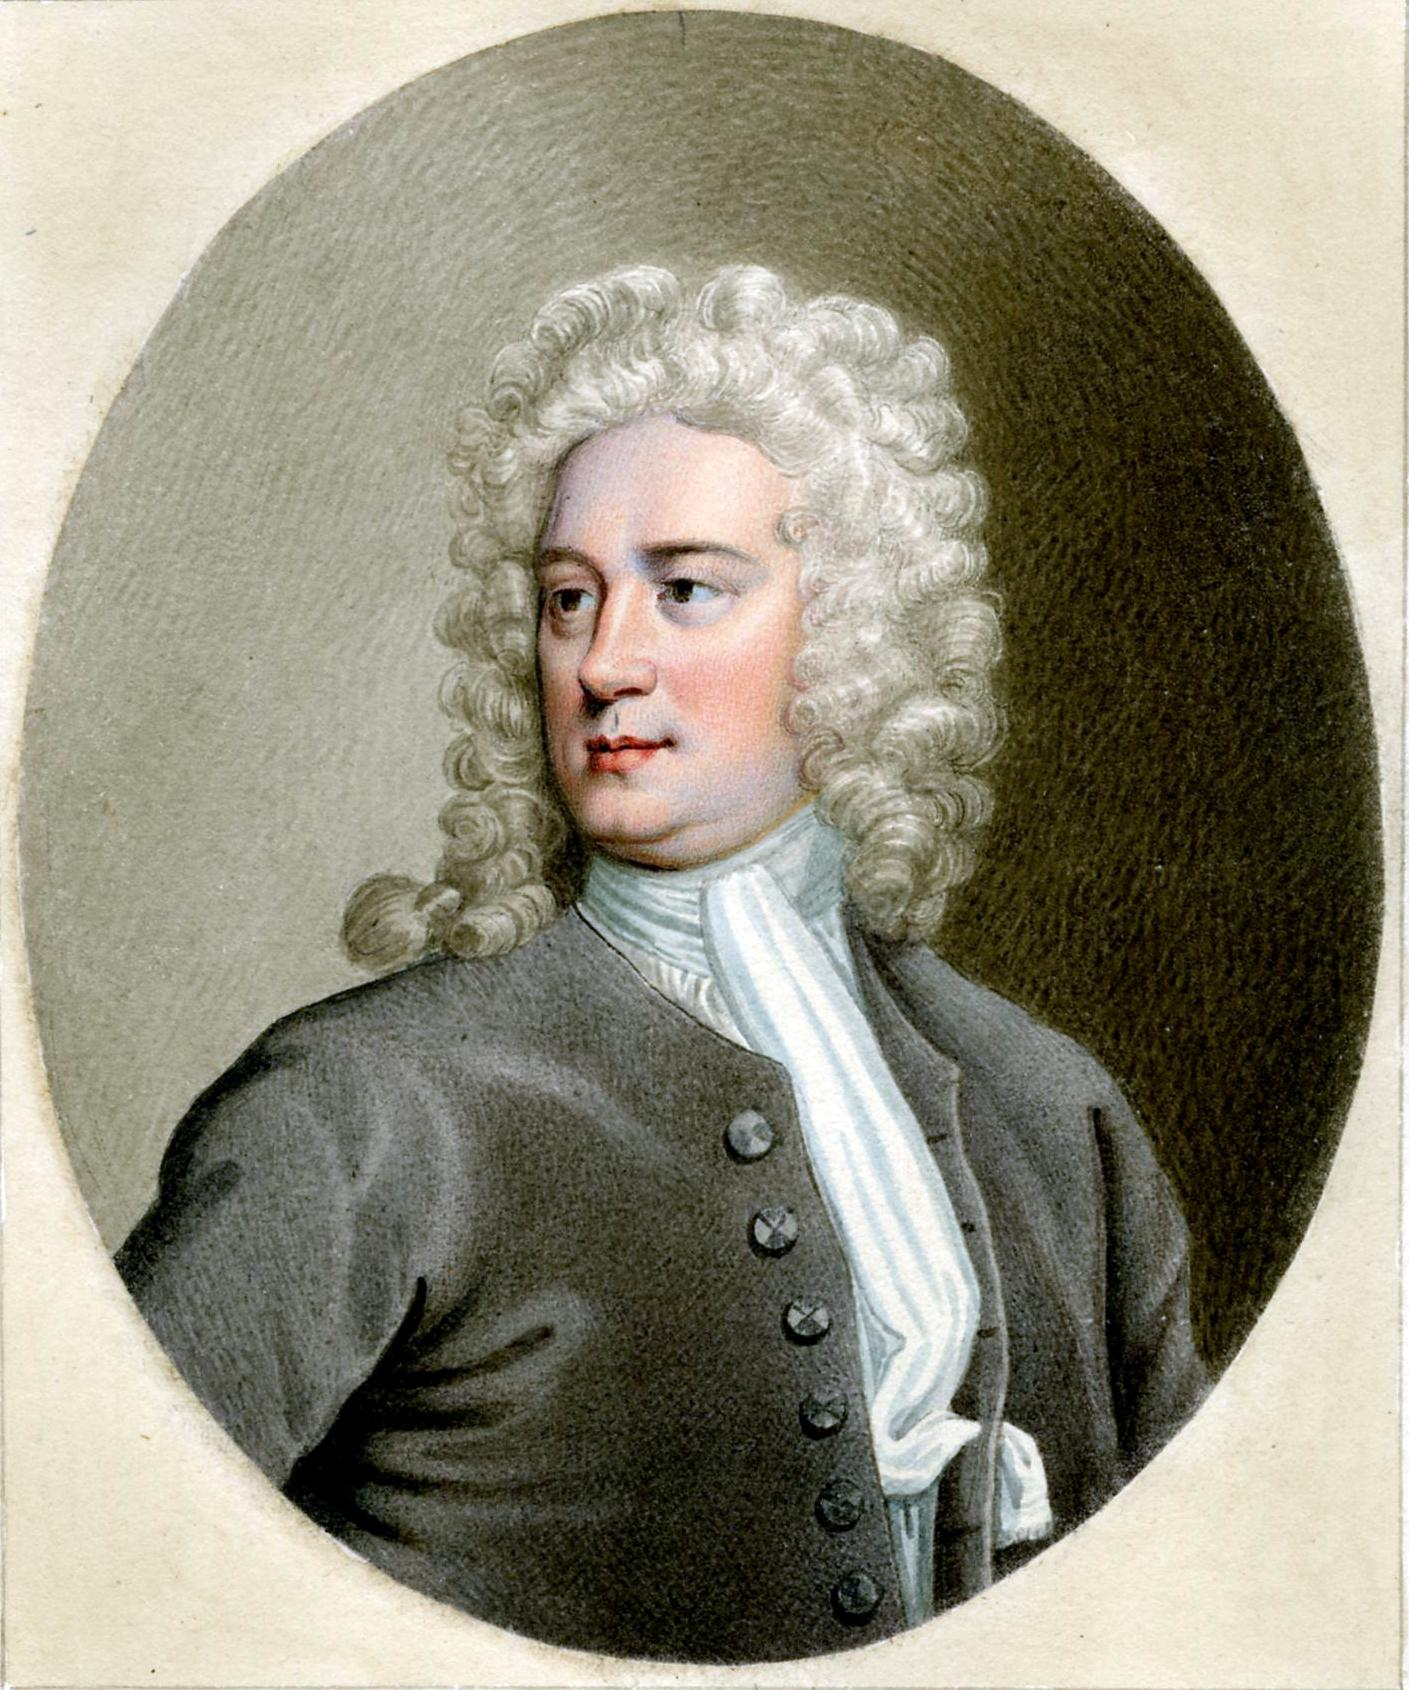 Portrait of Thomas Tickell by Sylvester Harding